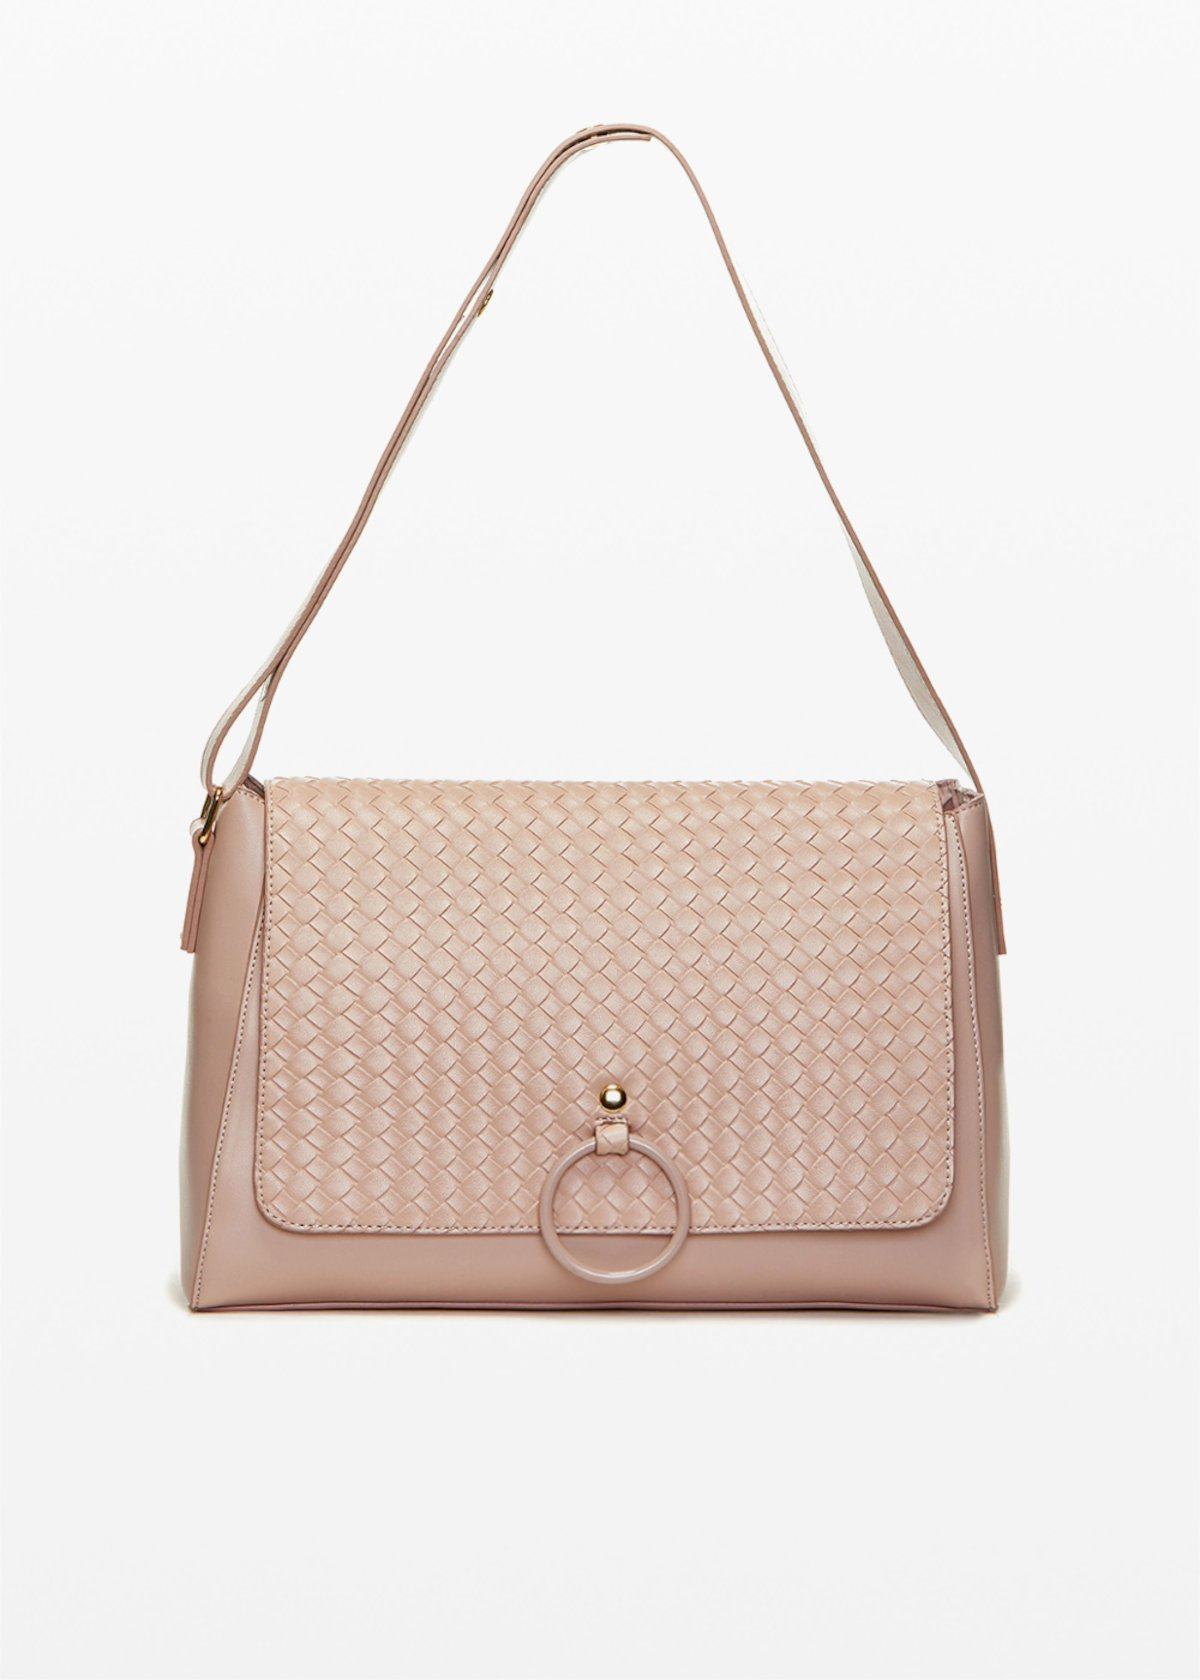 Boraliabr faux leather shoulder bag with braided flap - Calcite - Woman - Category image